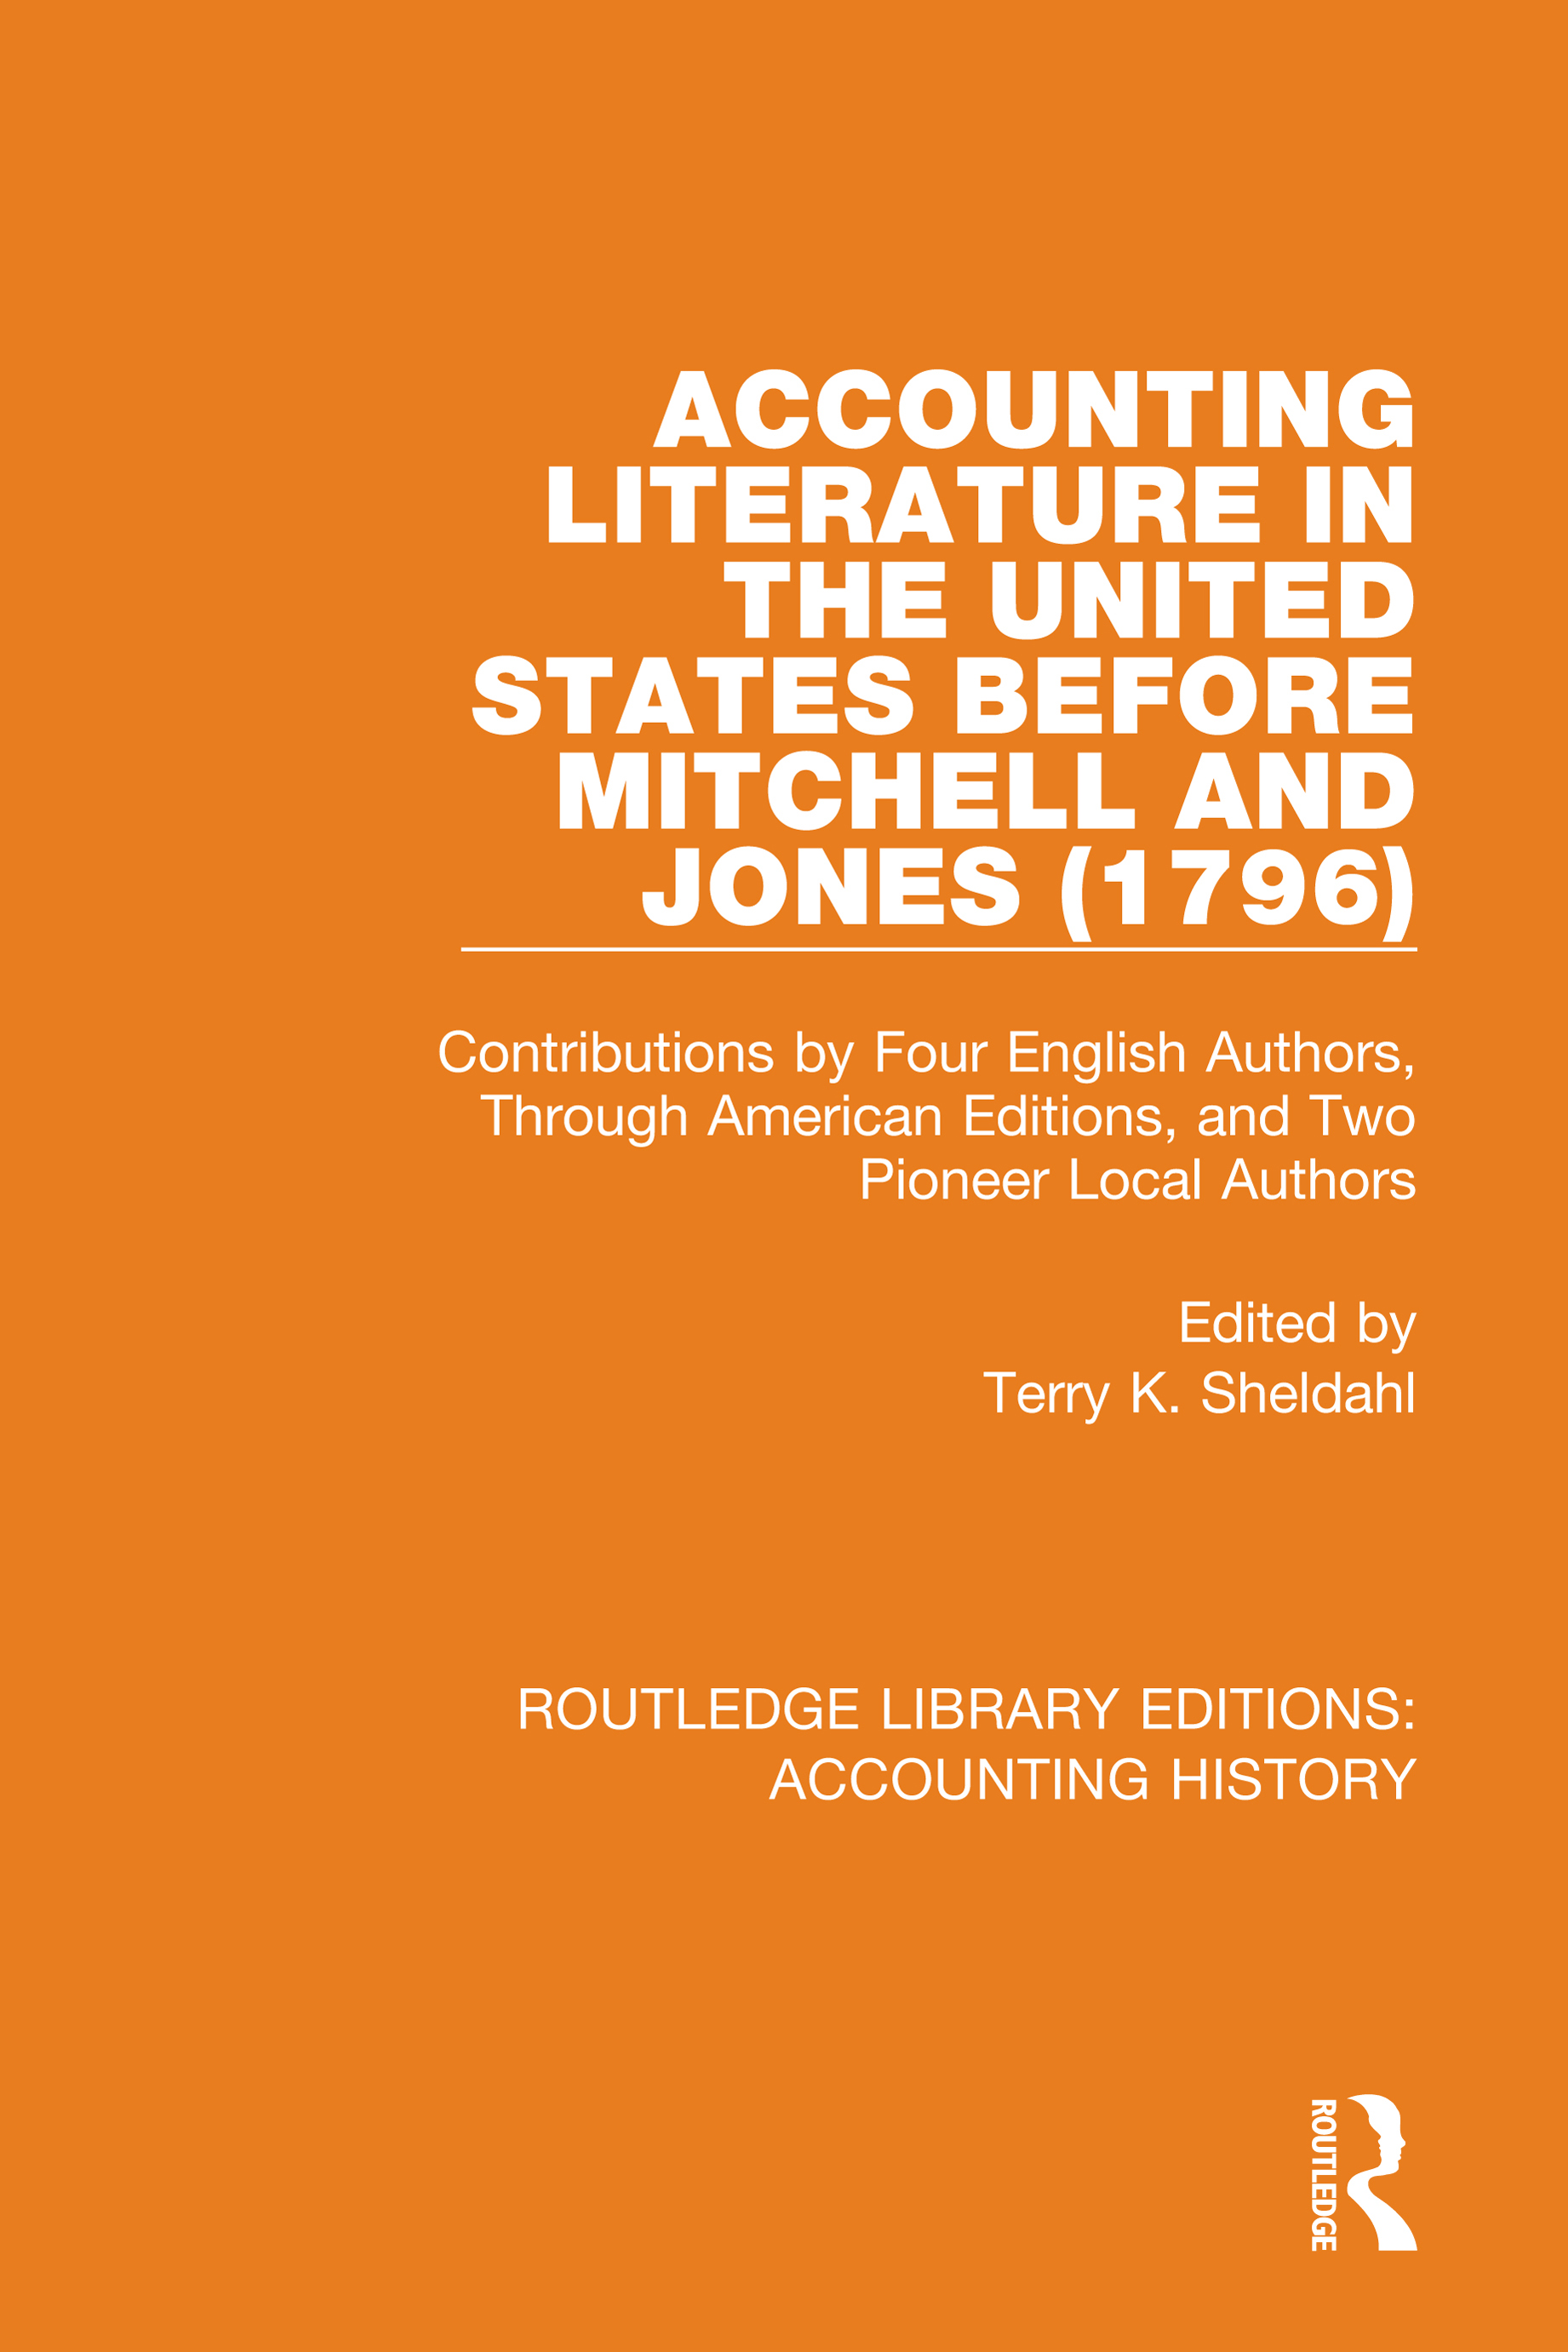 Accounting Literature in the United States Before Mitchell and Jones (1796)